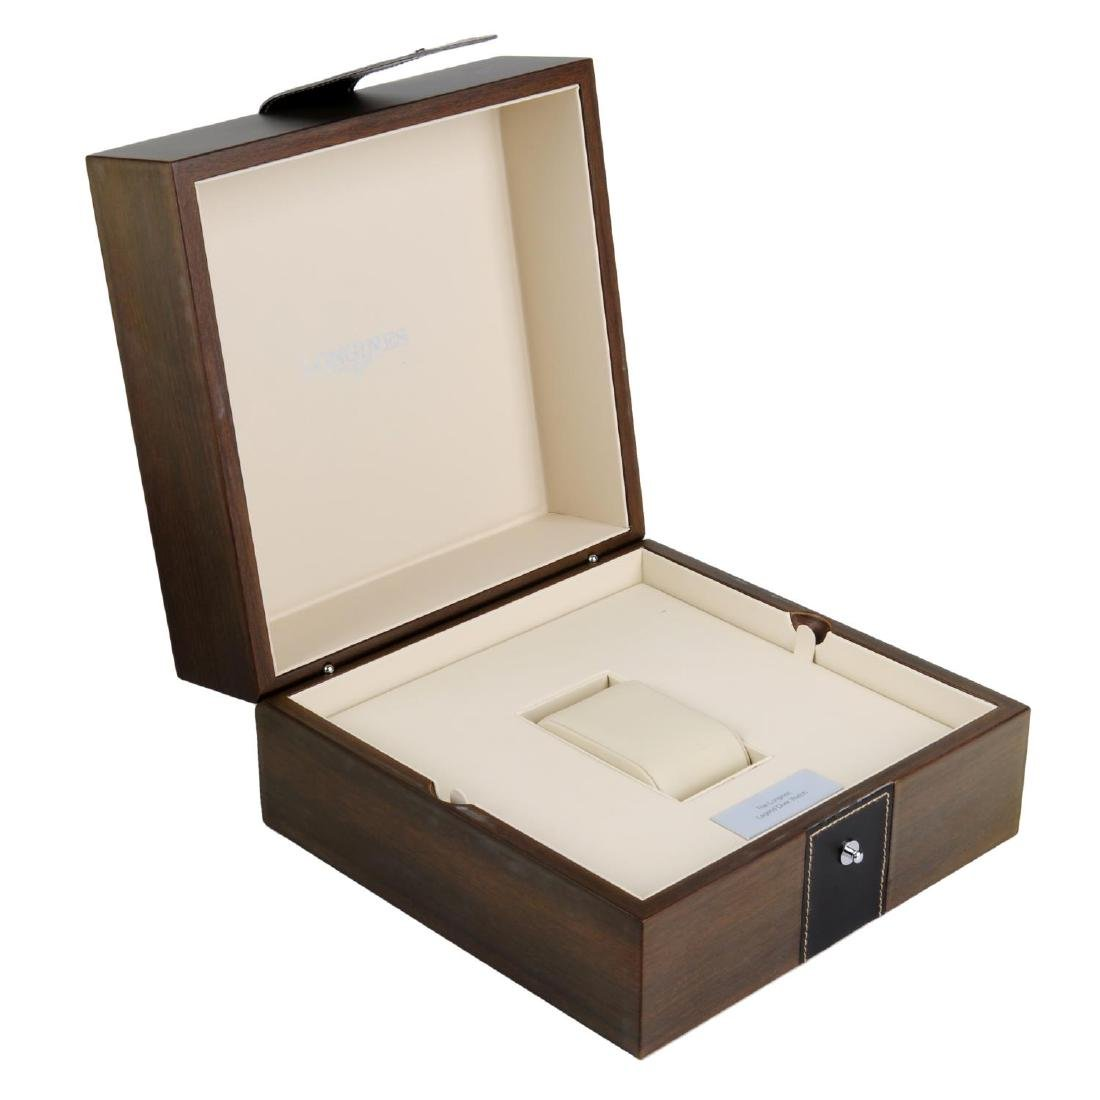 LONGINES - a complete watch box. - 2